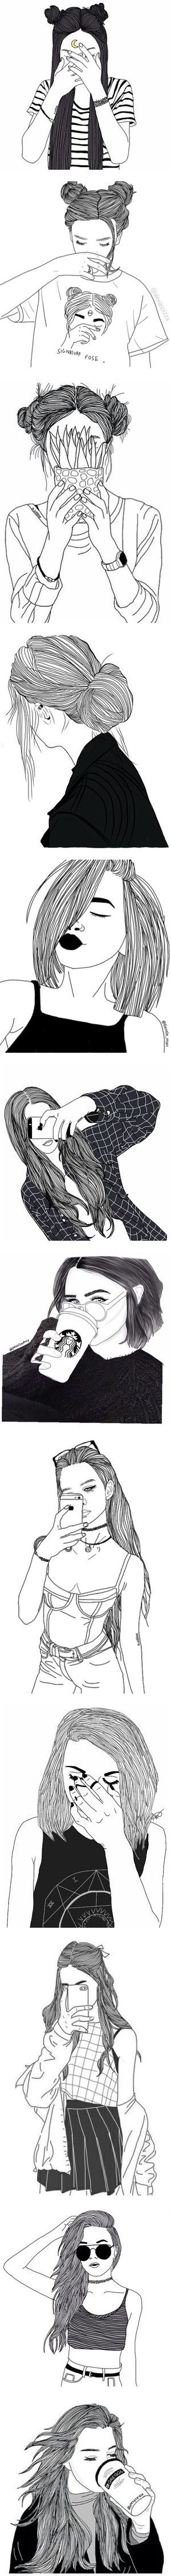 """black line drawings"" by xxharrietxx ❤ liked on Polyvore"